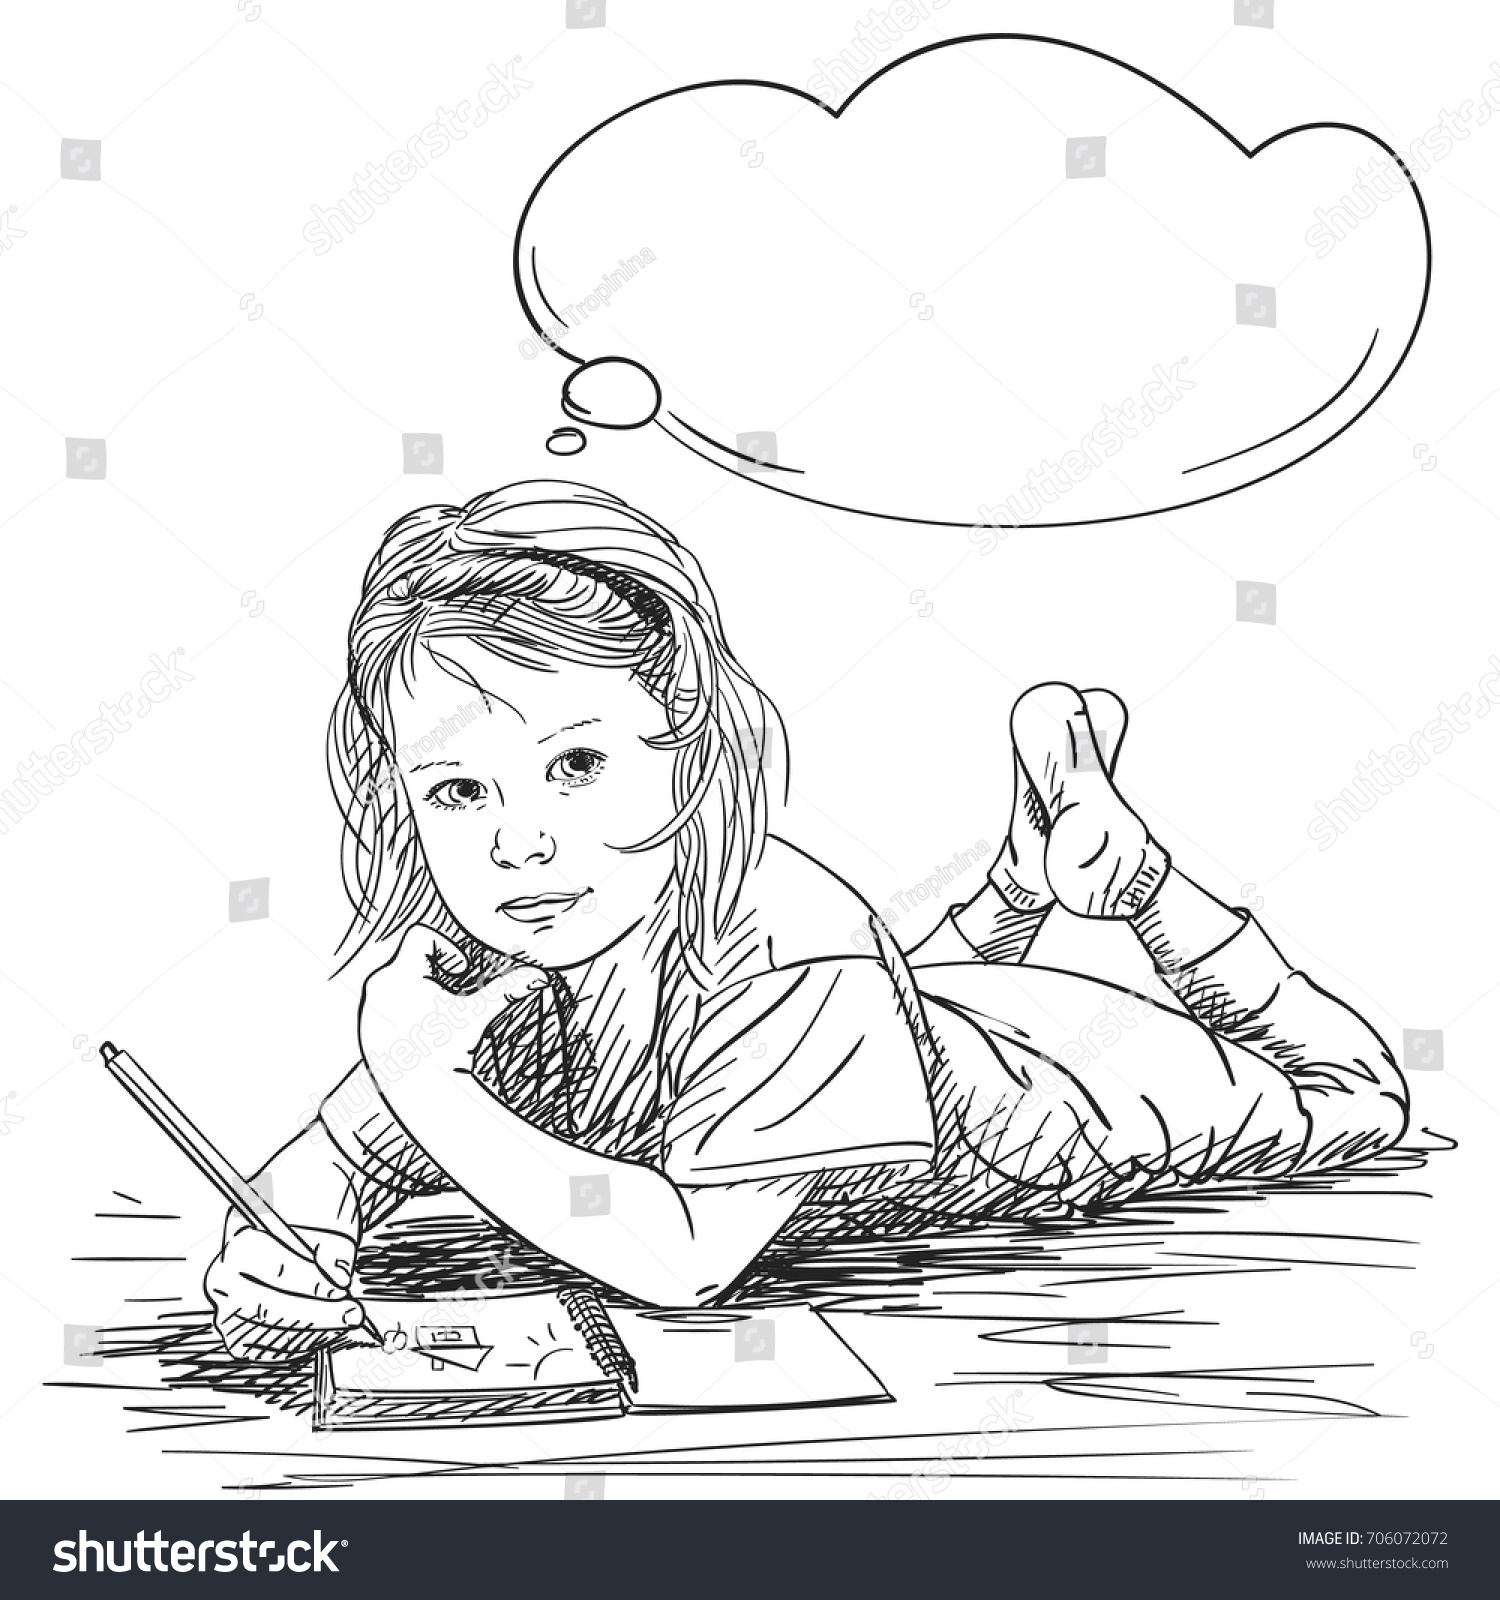 child girl drawing house and sun in note book while lying on floor and dreaming